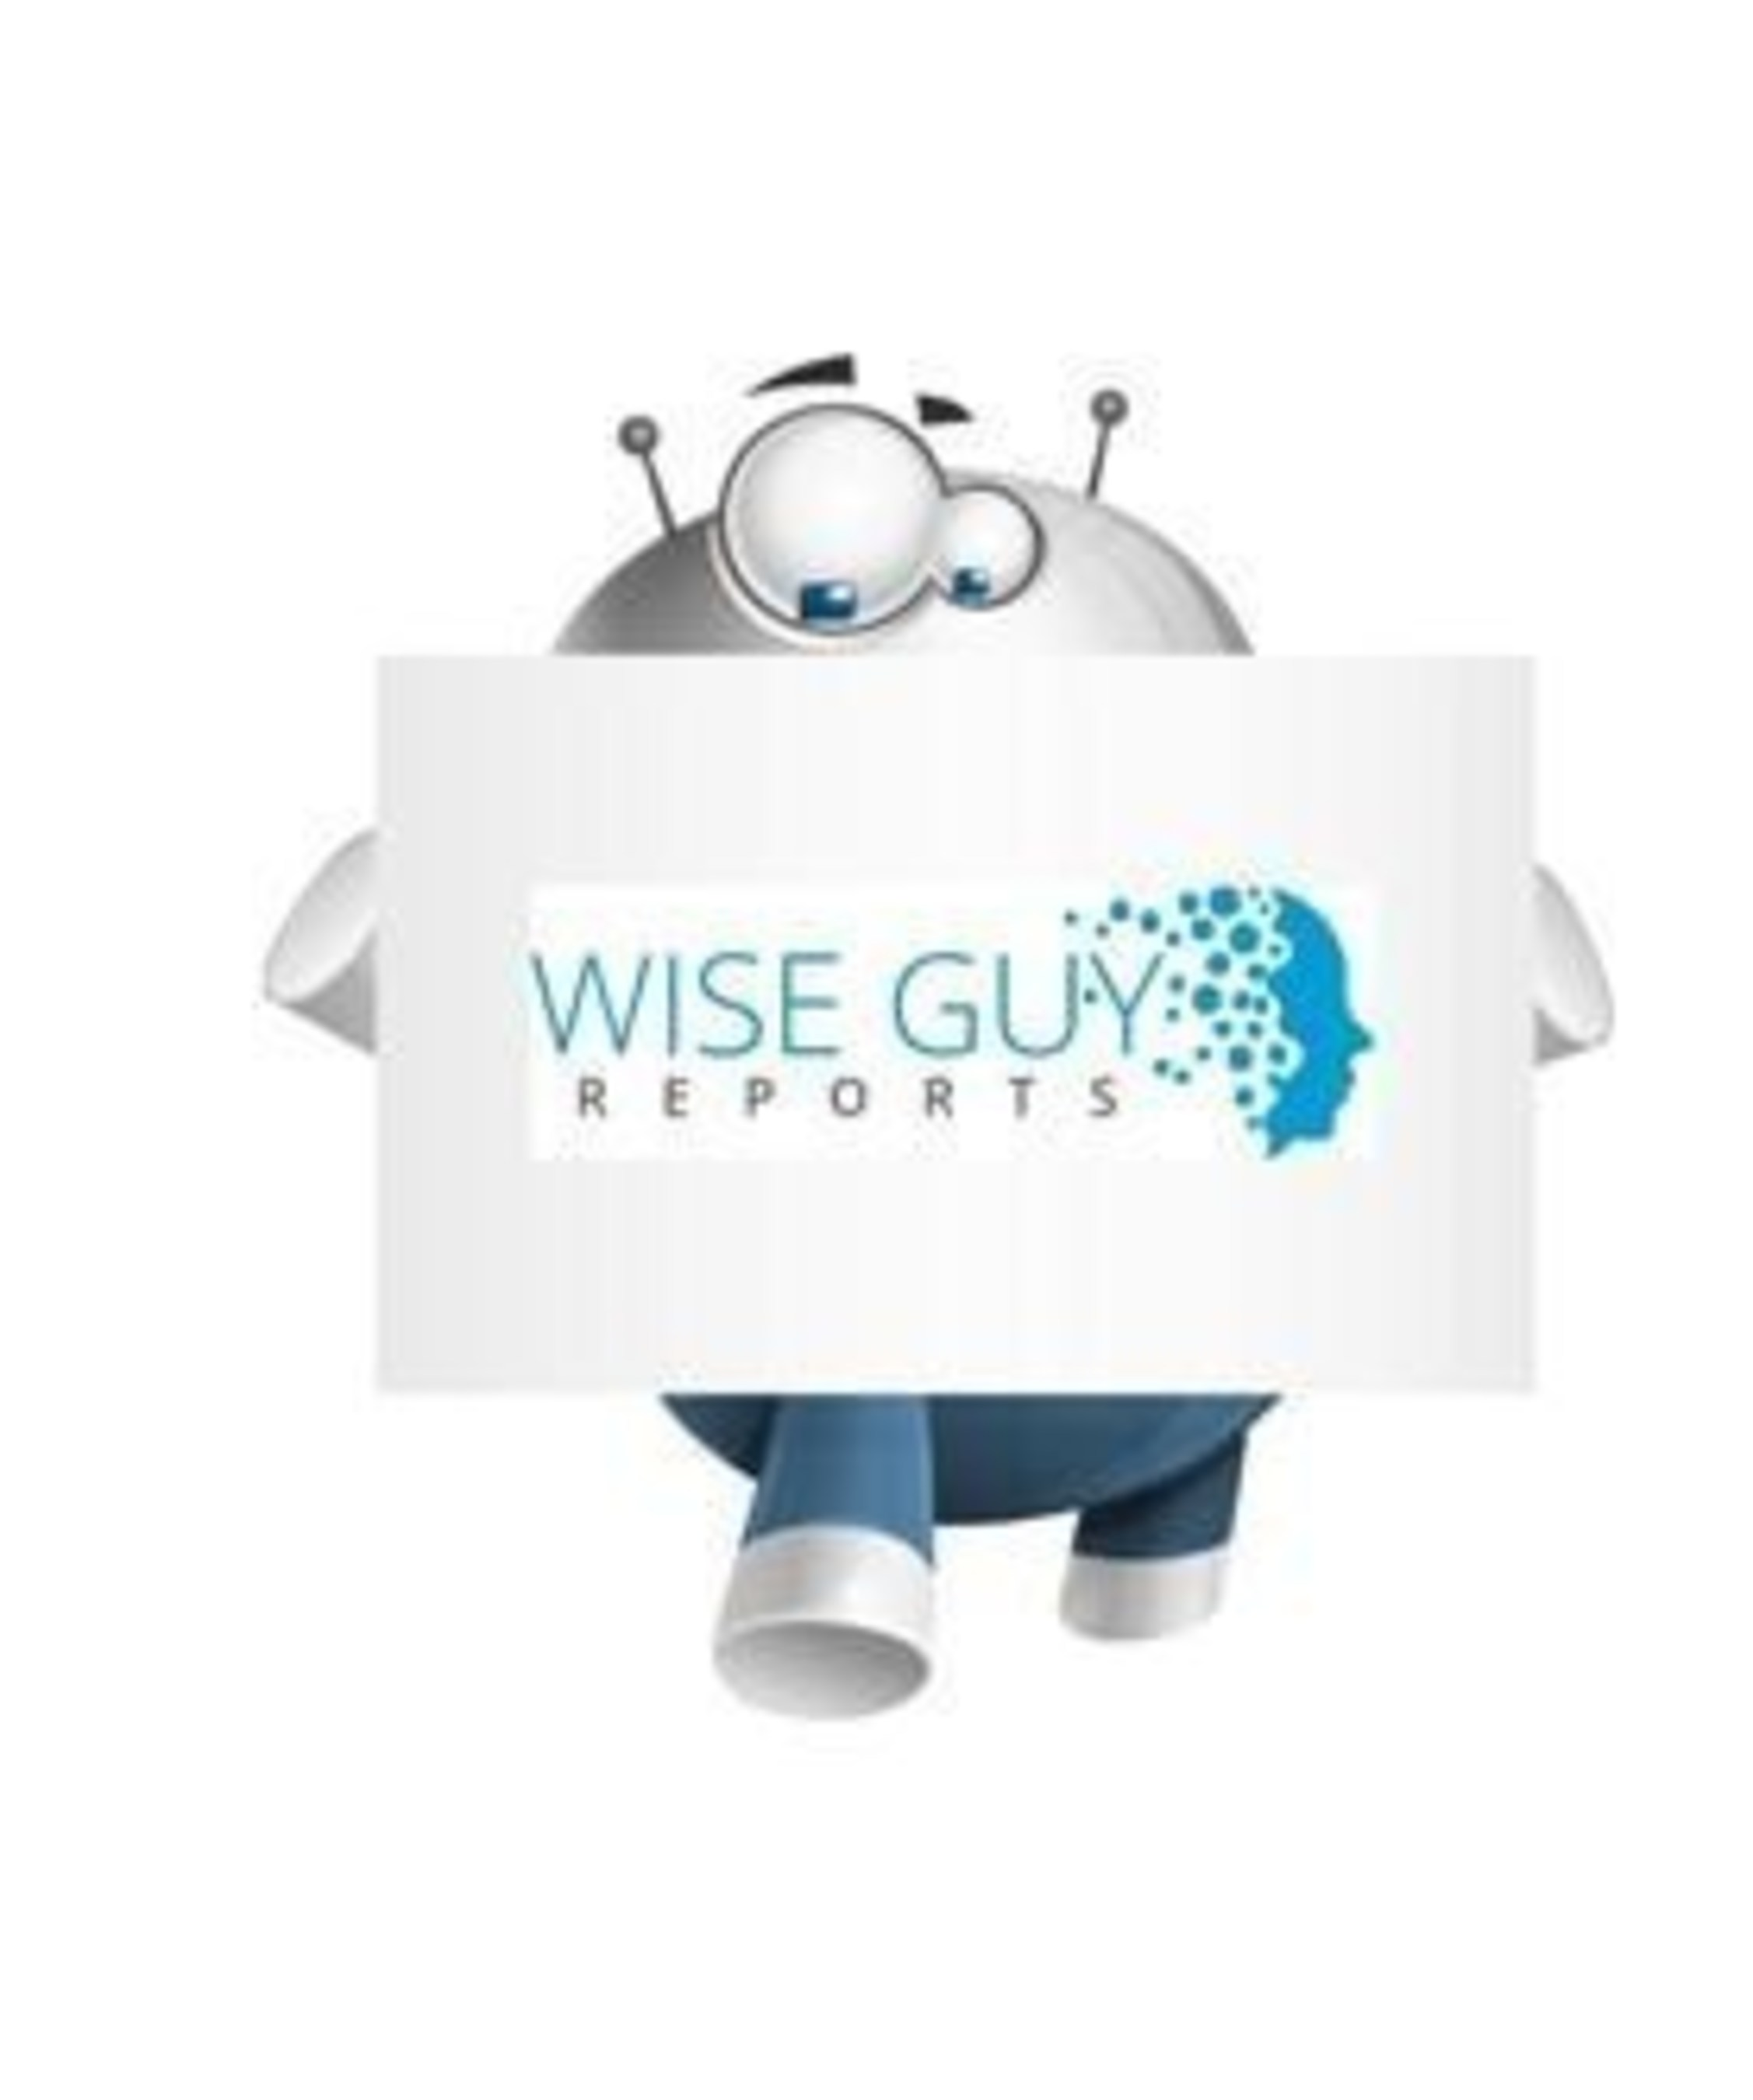 Synchronous E-learning Industry Global Market Research Report 2016 : Revenue, Cost, Gross (M USD) Revenue Growth Rate and Gross Margin